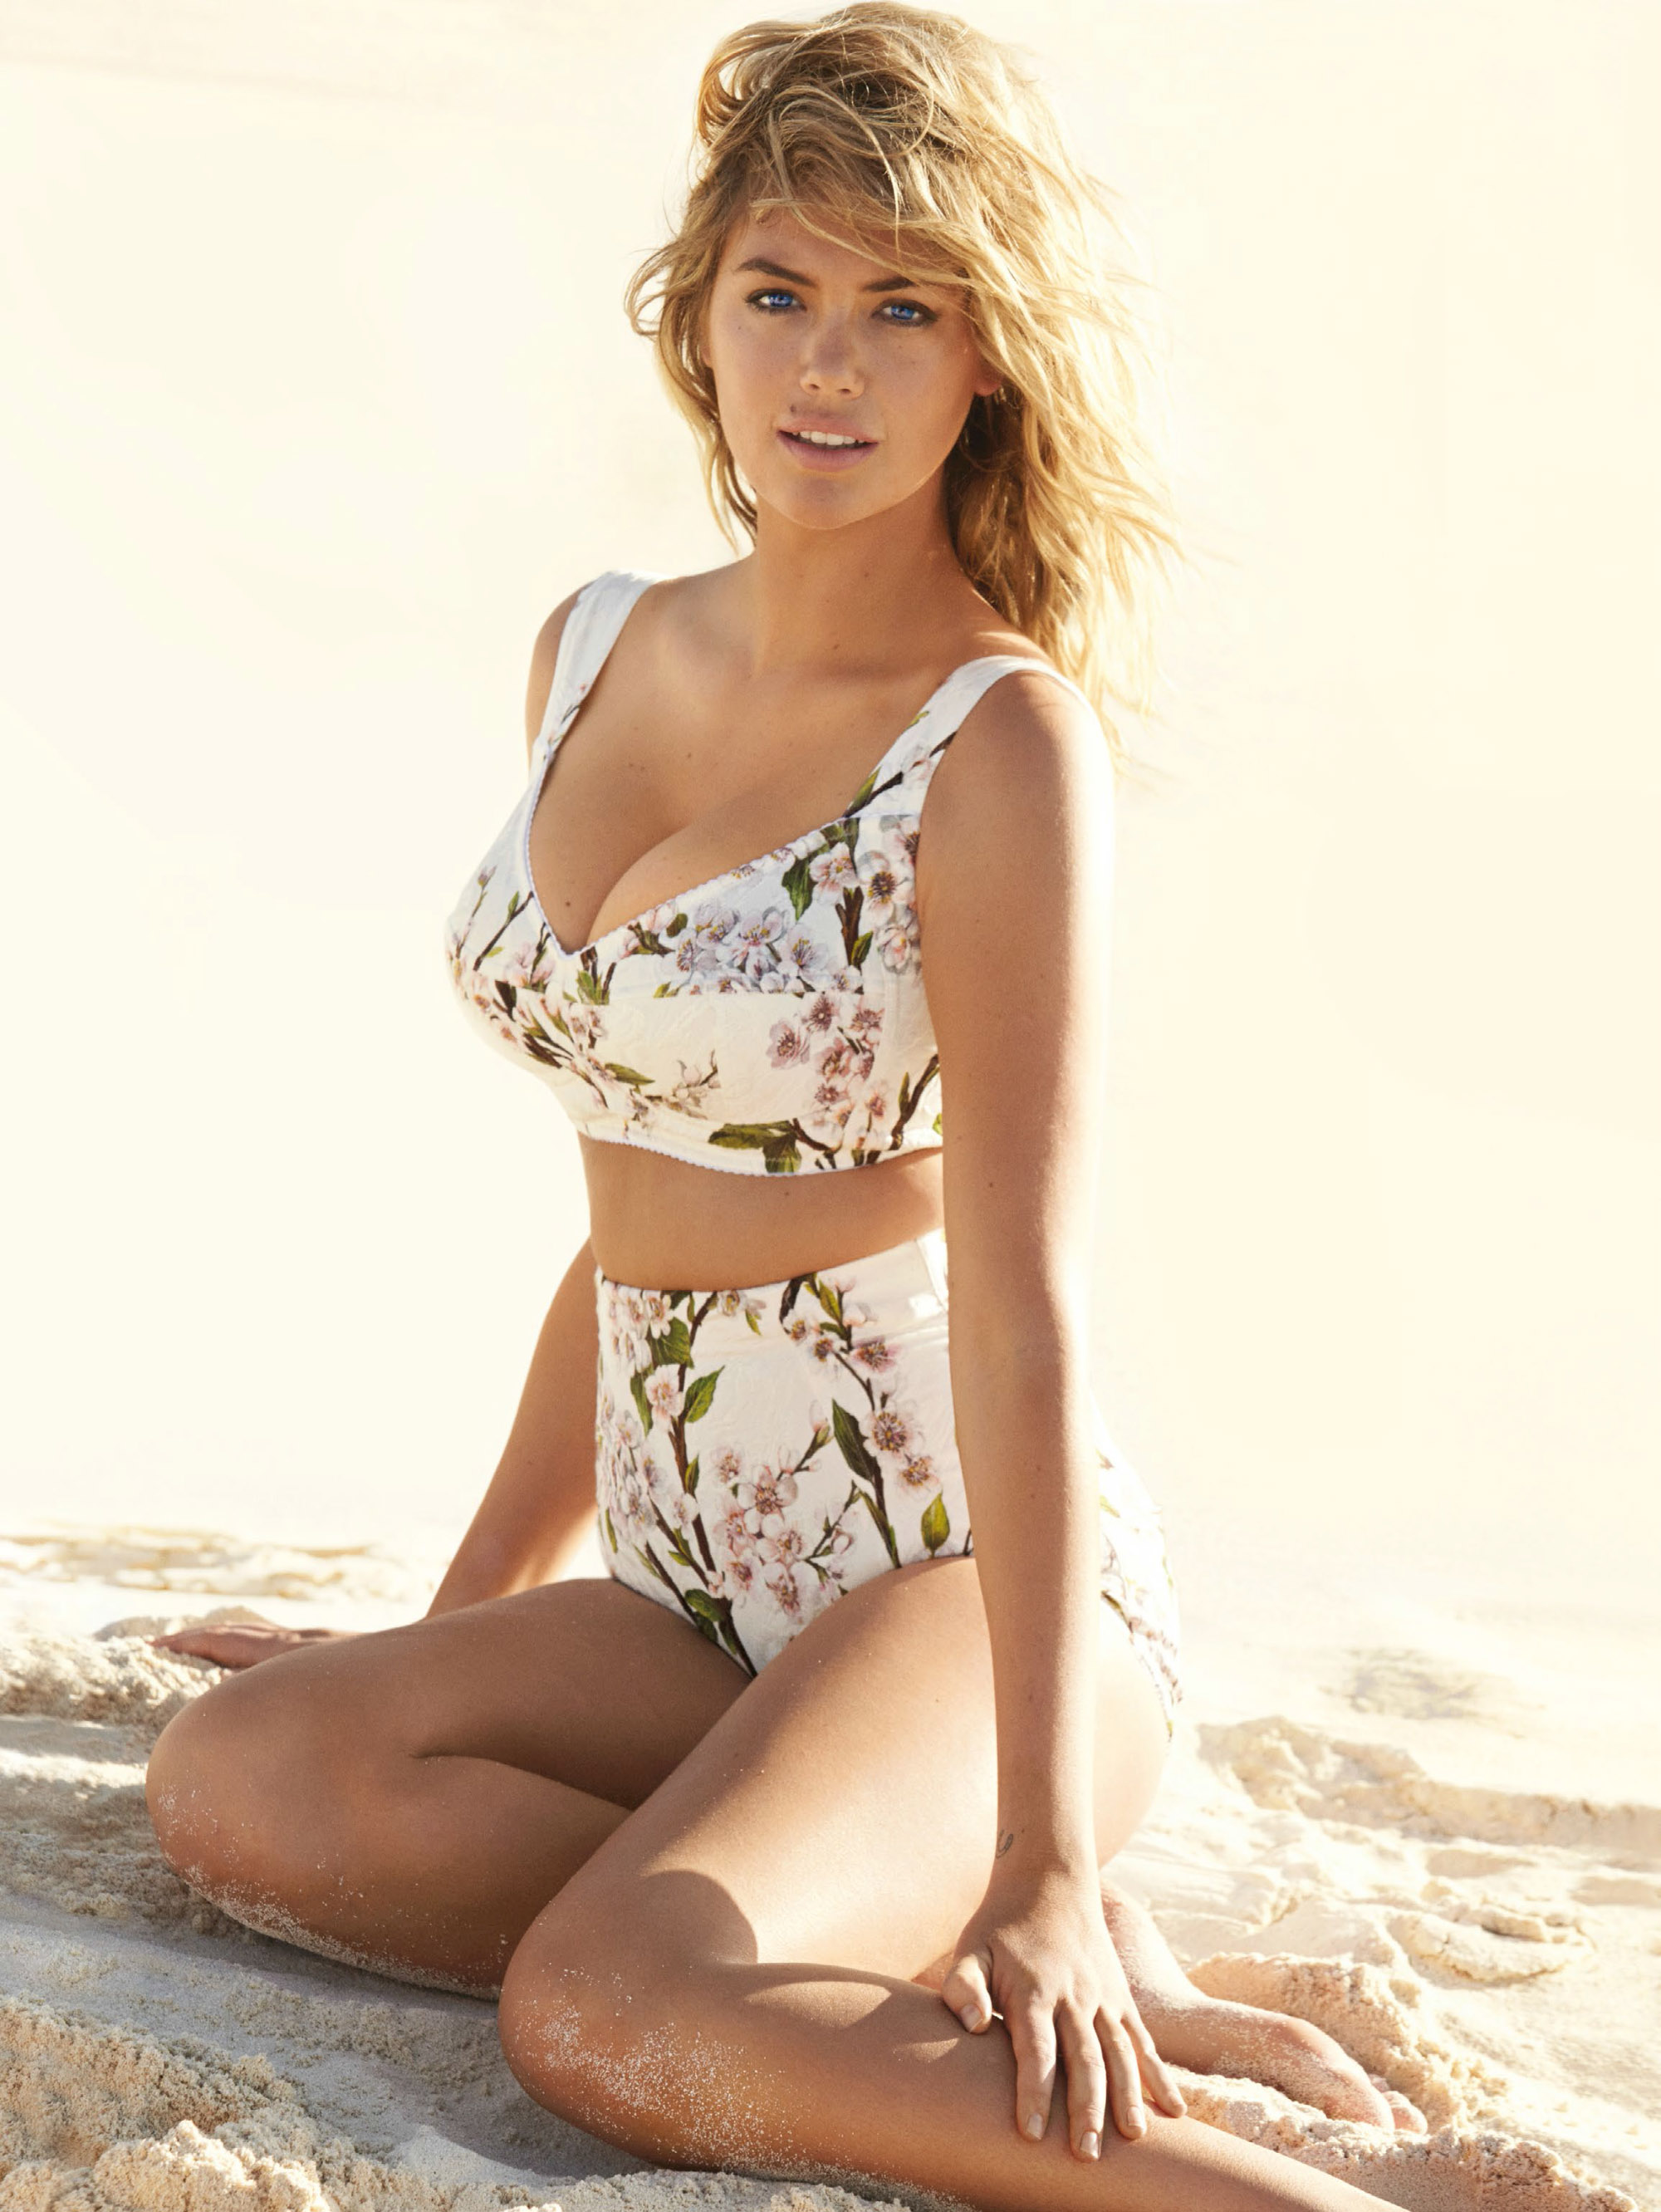 kate-upton-by-mario-testino-for-uk-vogue-june-2014-9